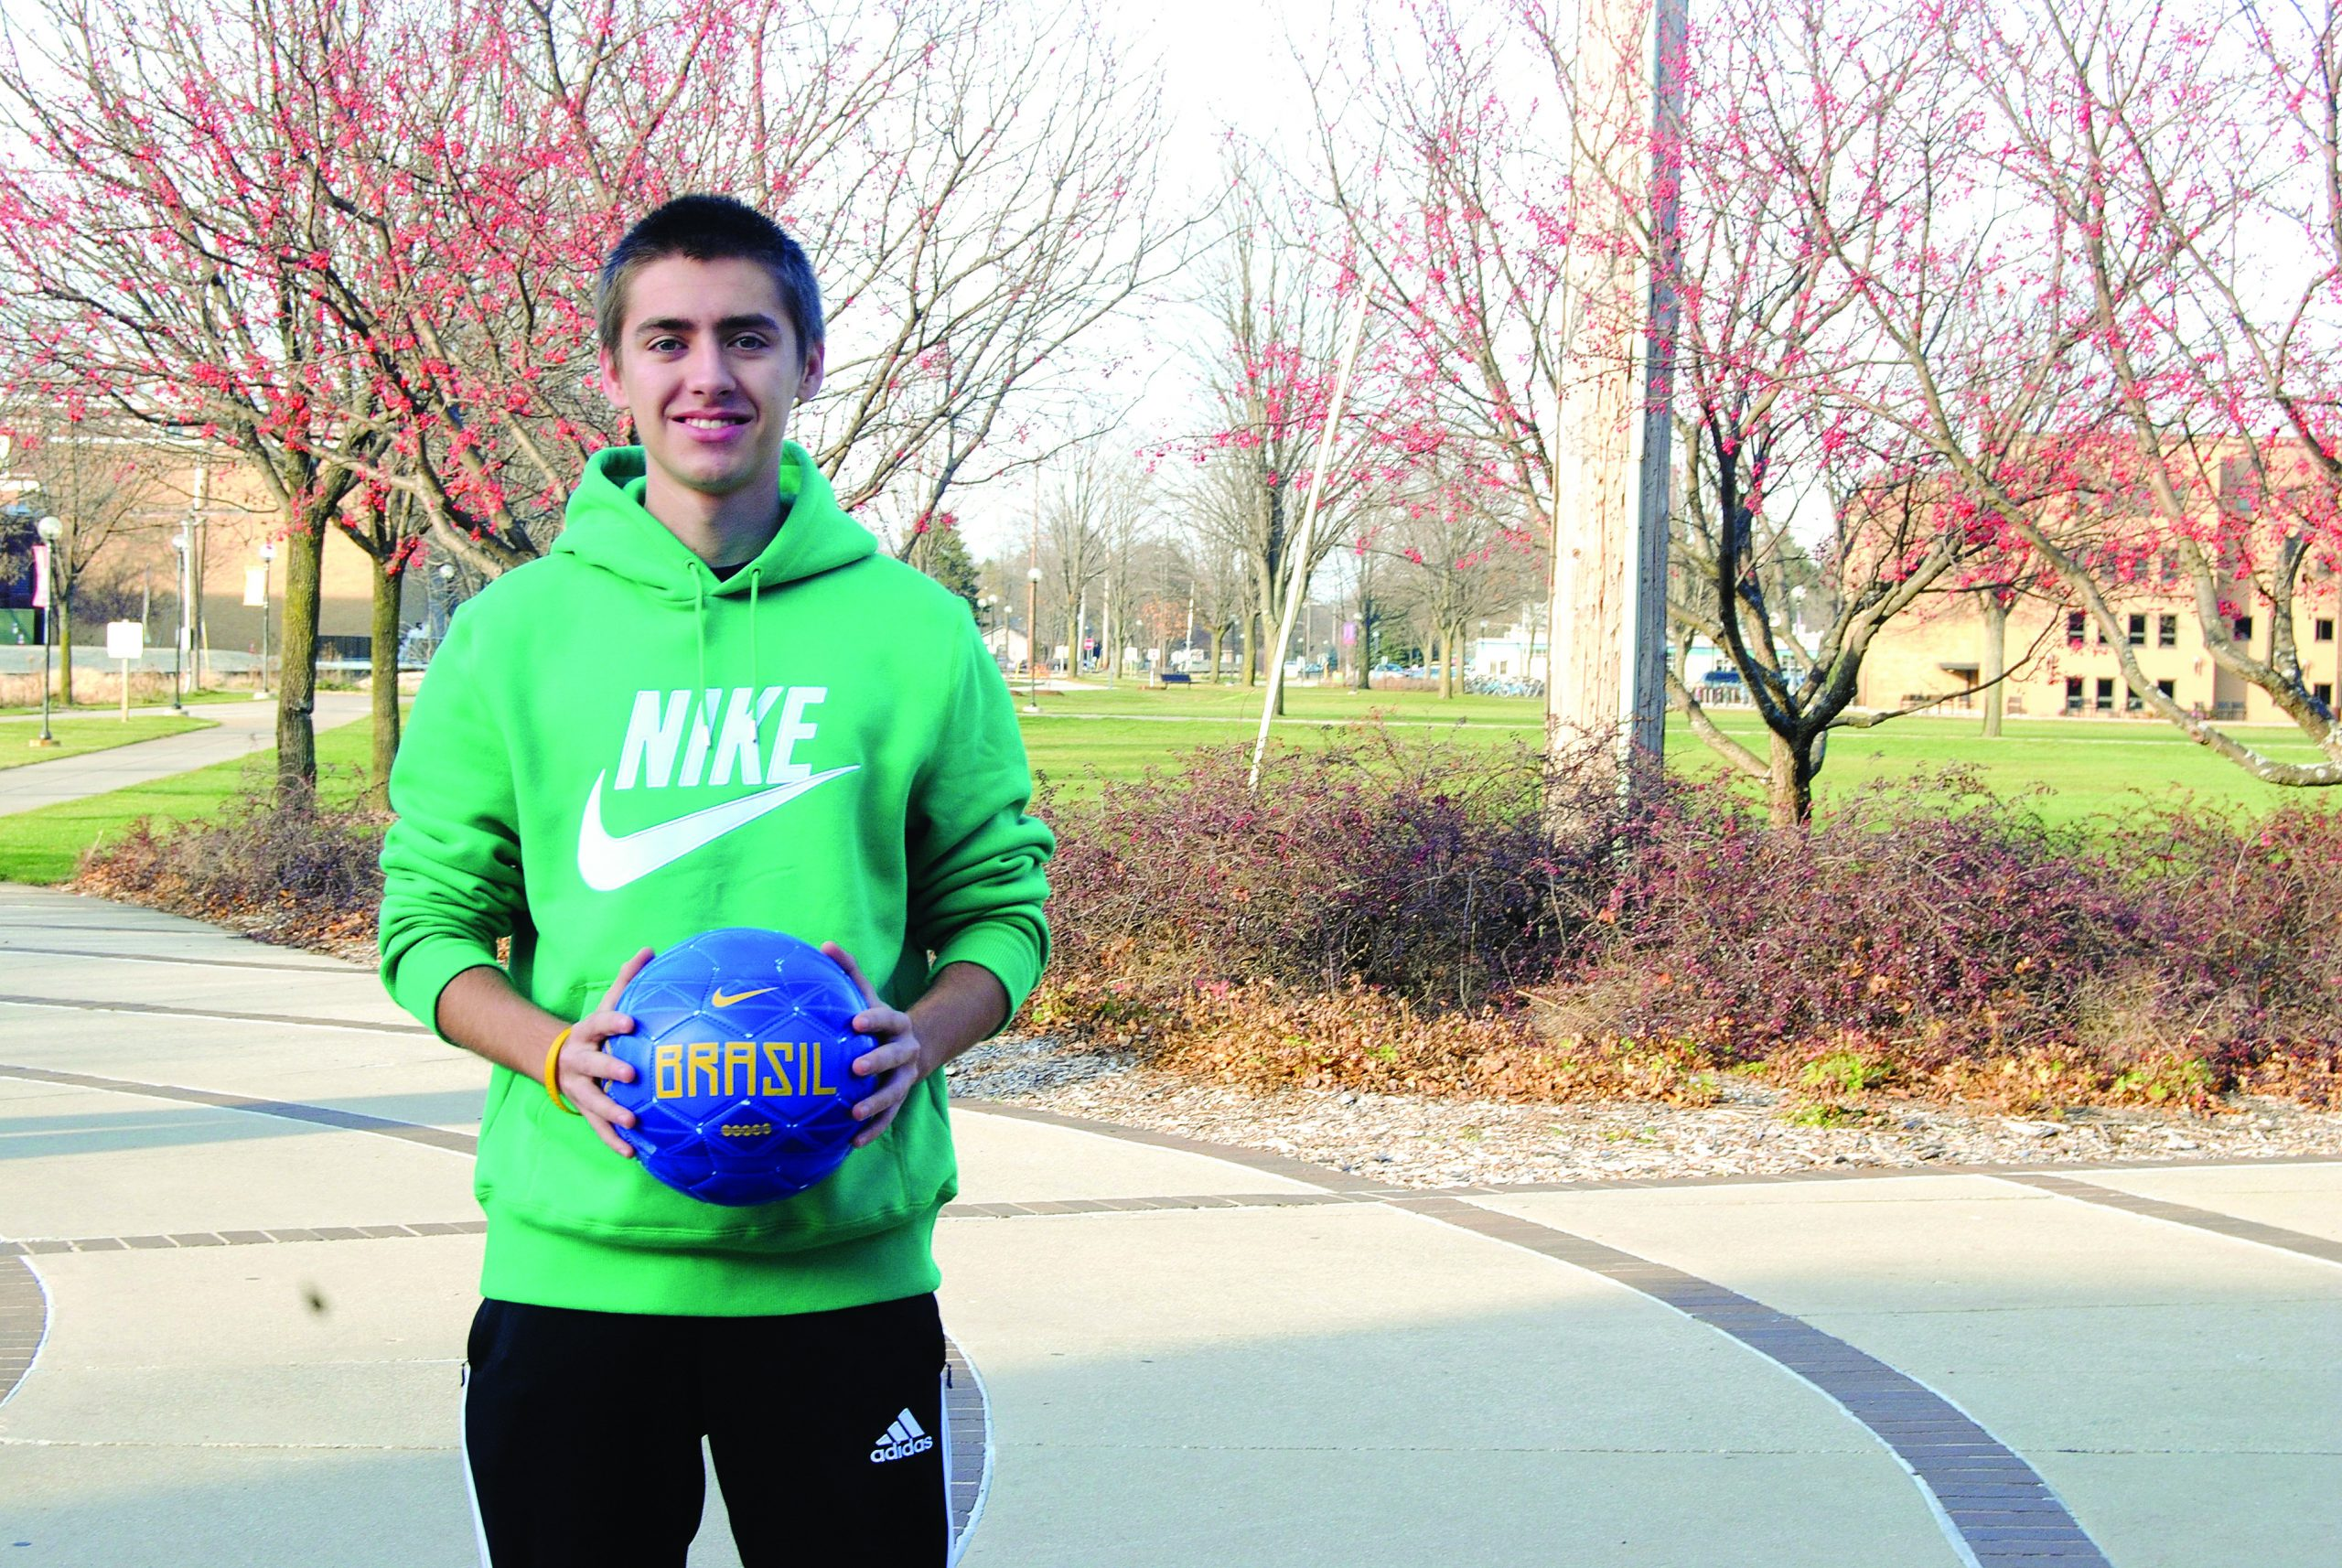 """Diego Zago wears a neon green """"Nike"""" hoodie and holds a soccer ball on the Goshen College campus"""